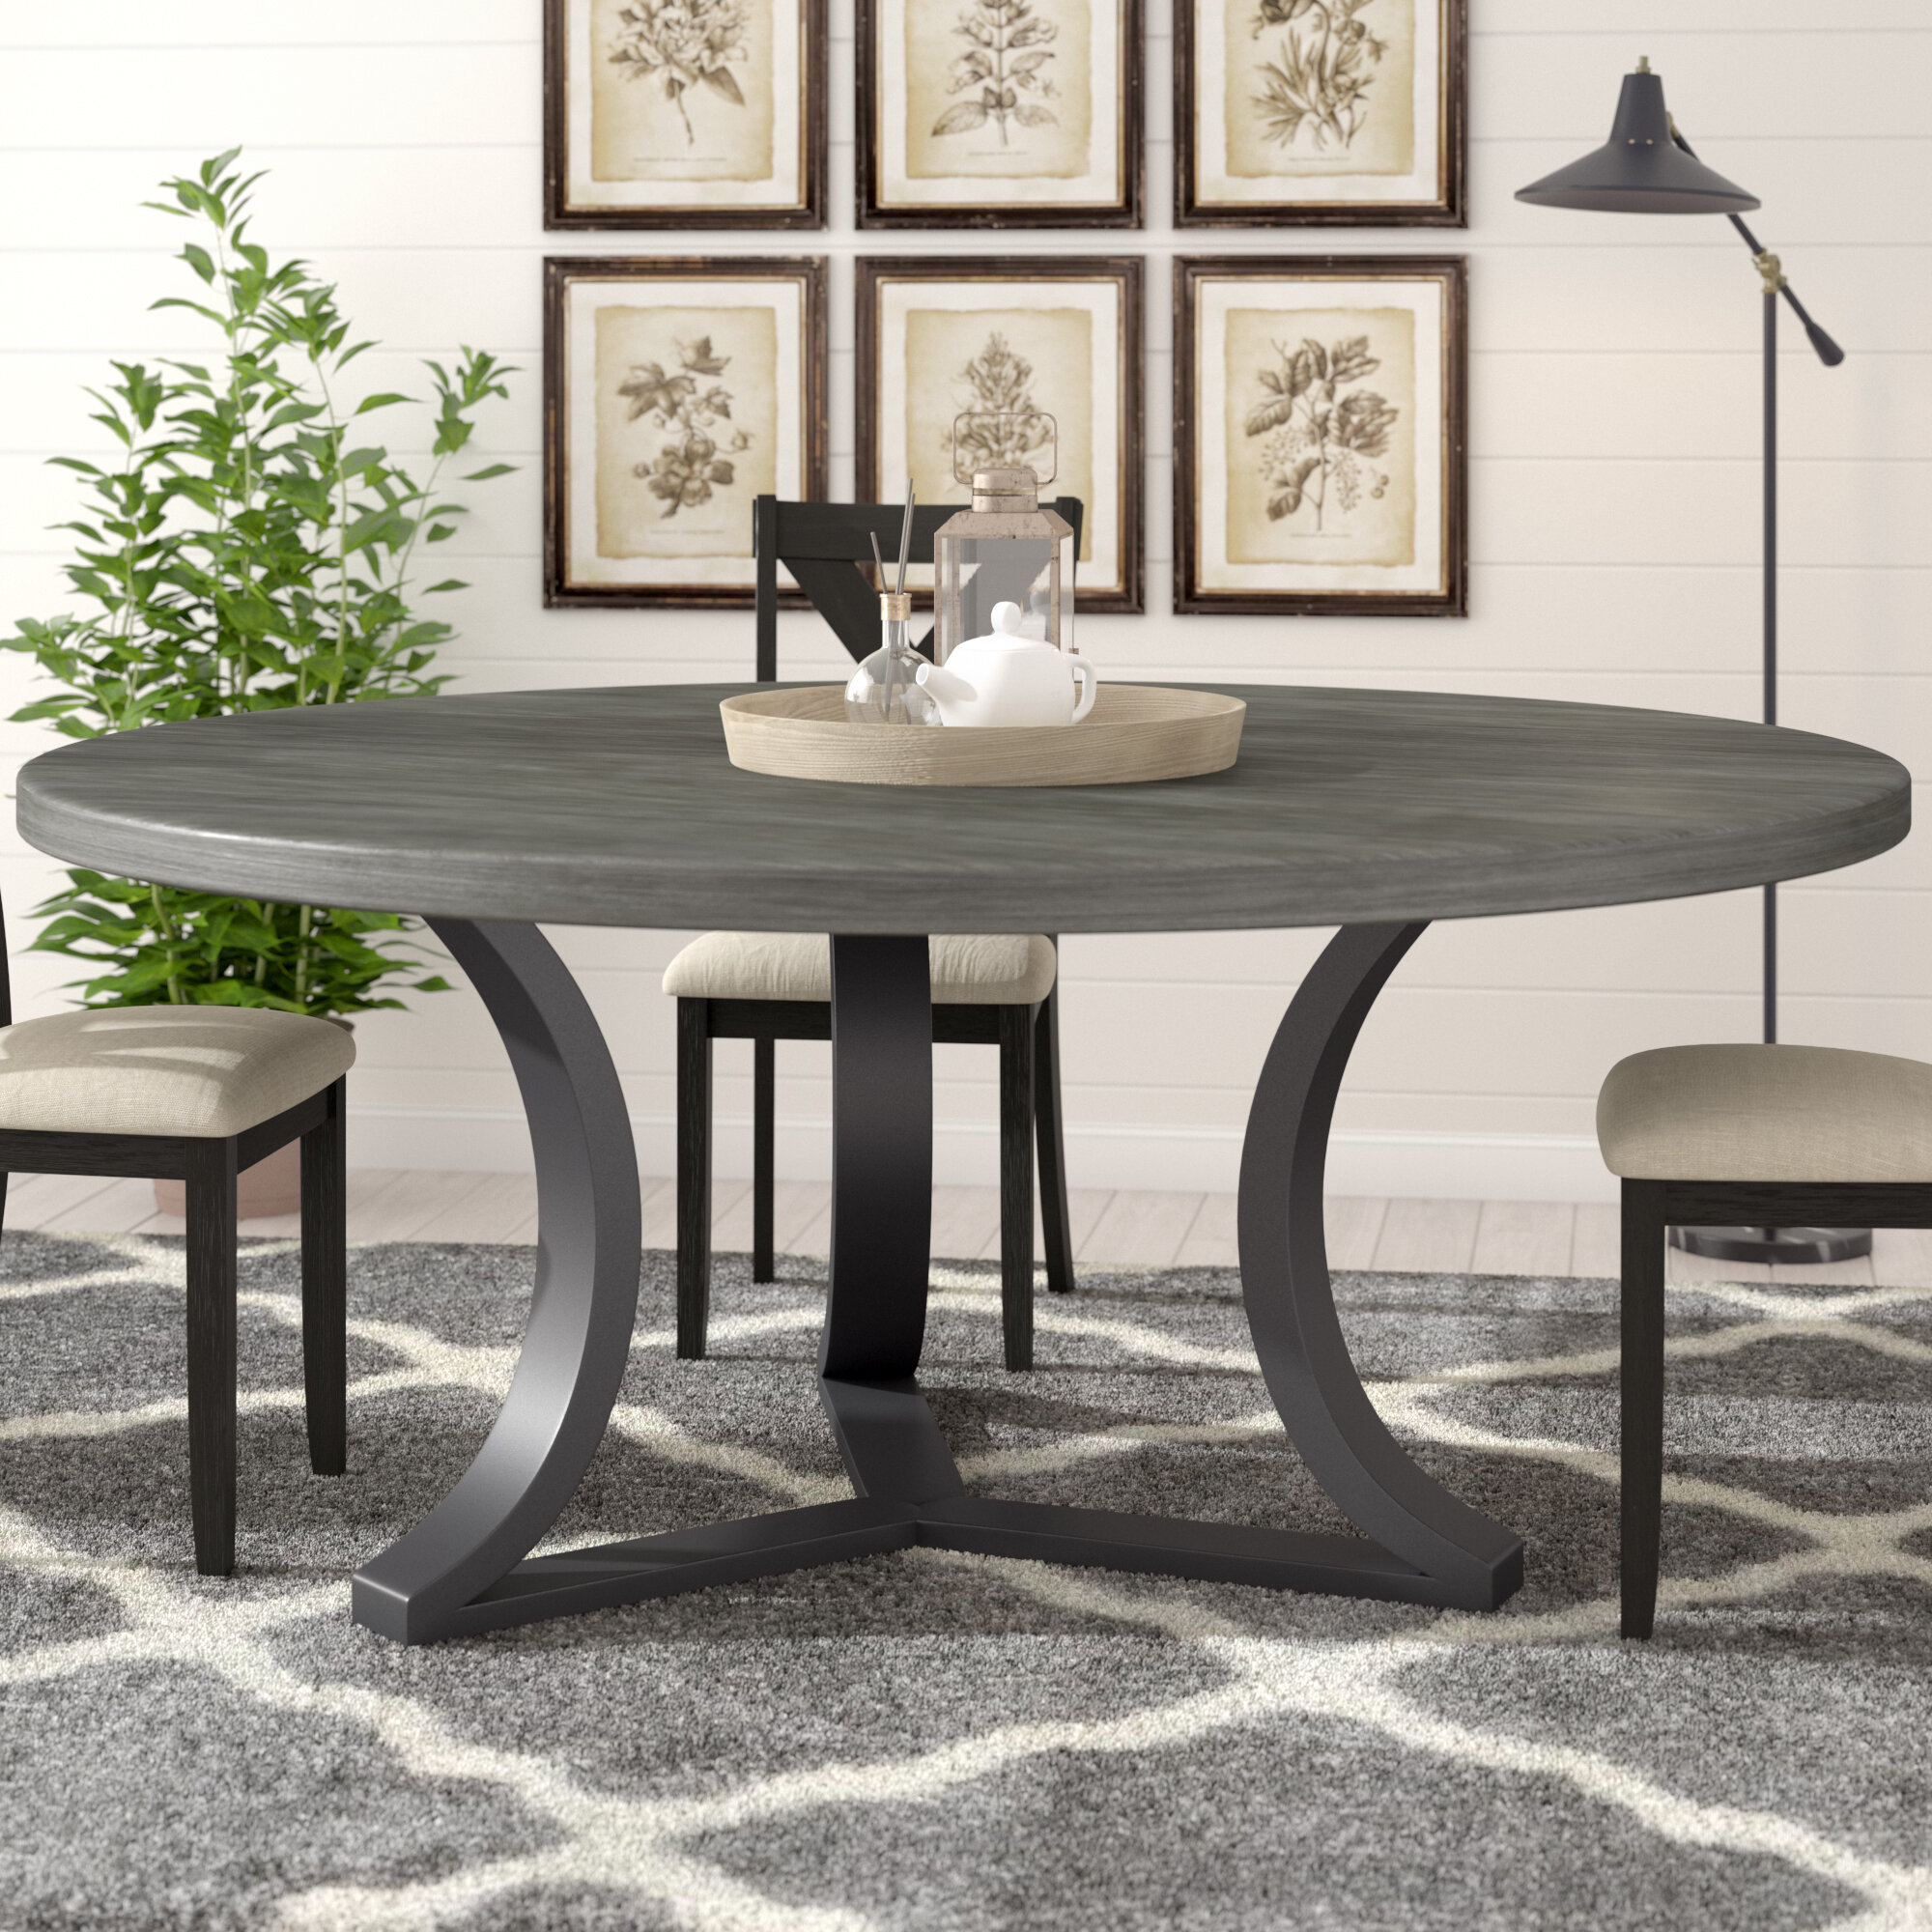 8 Seat Round Kitchen Dining Tables You Ll Love In 2020 Wayfair